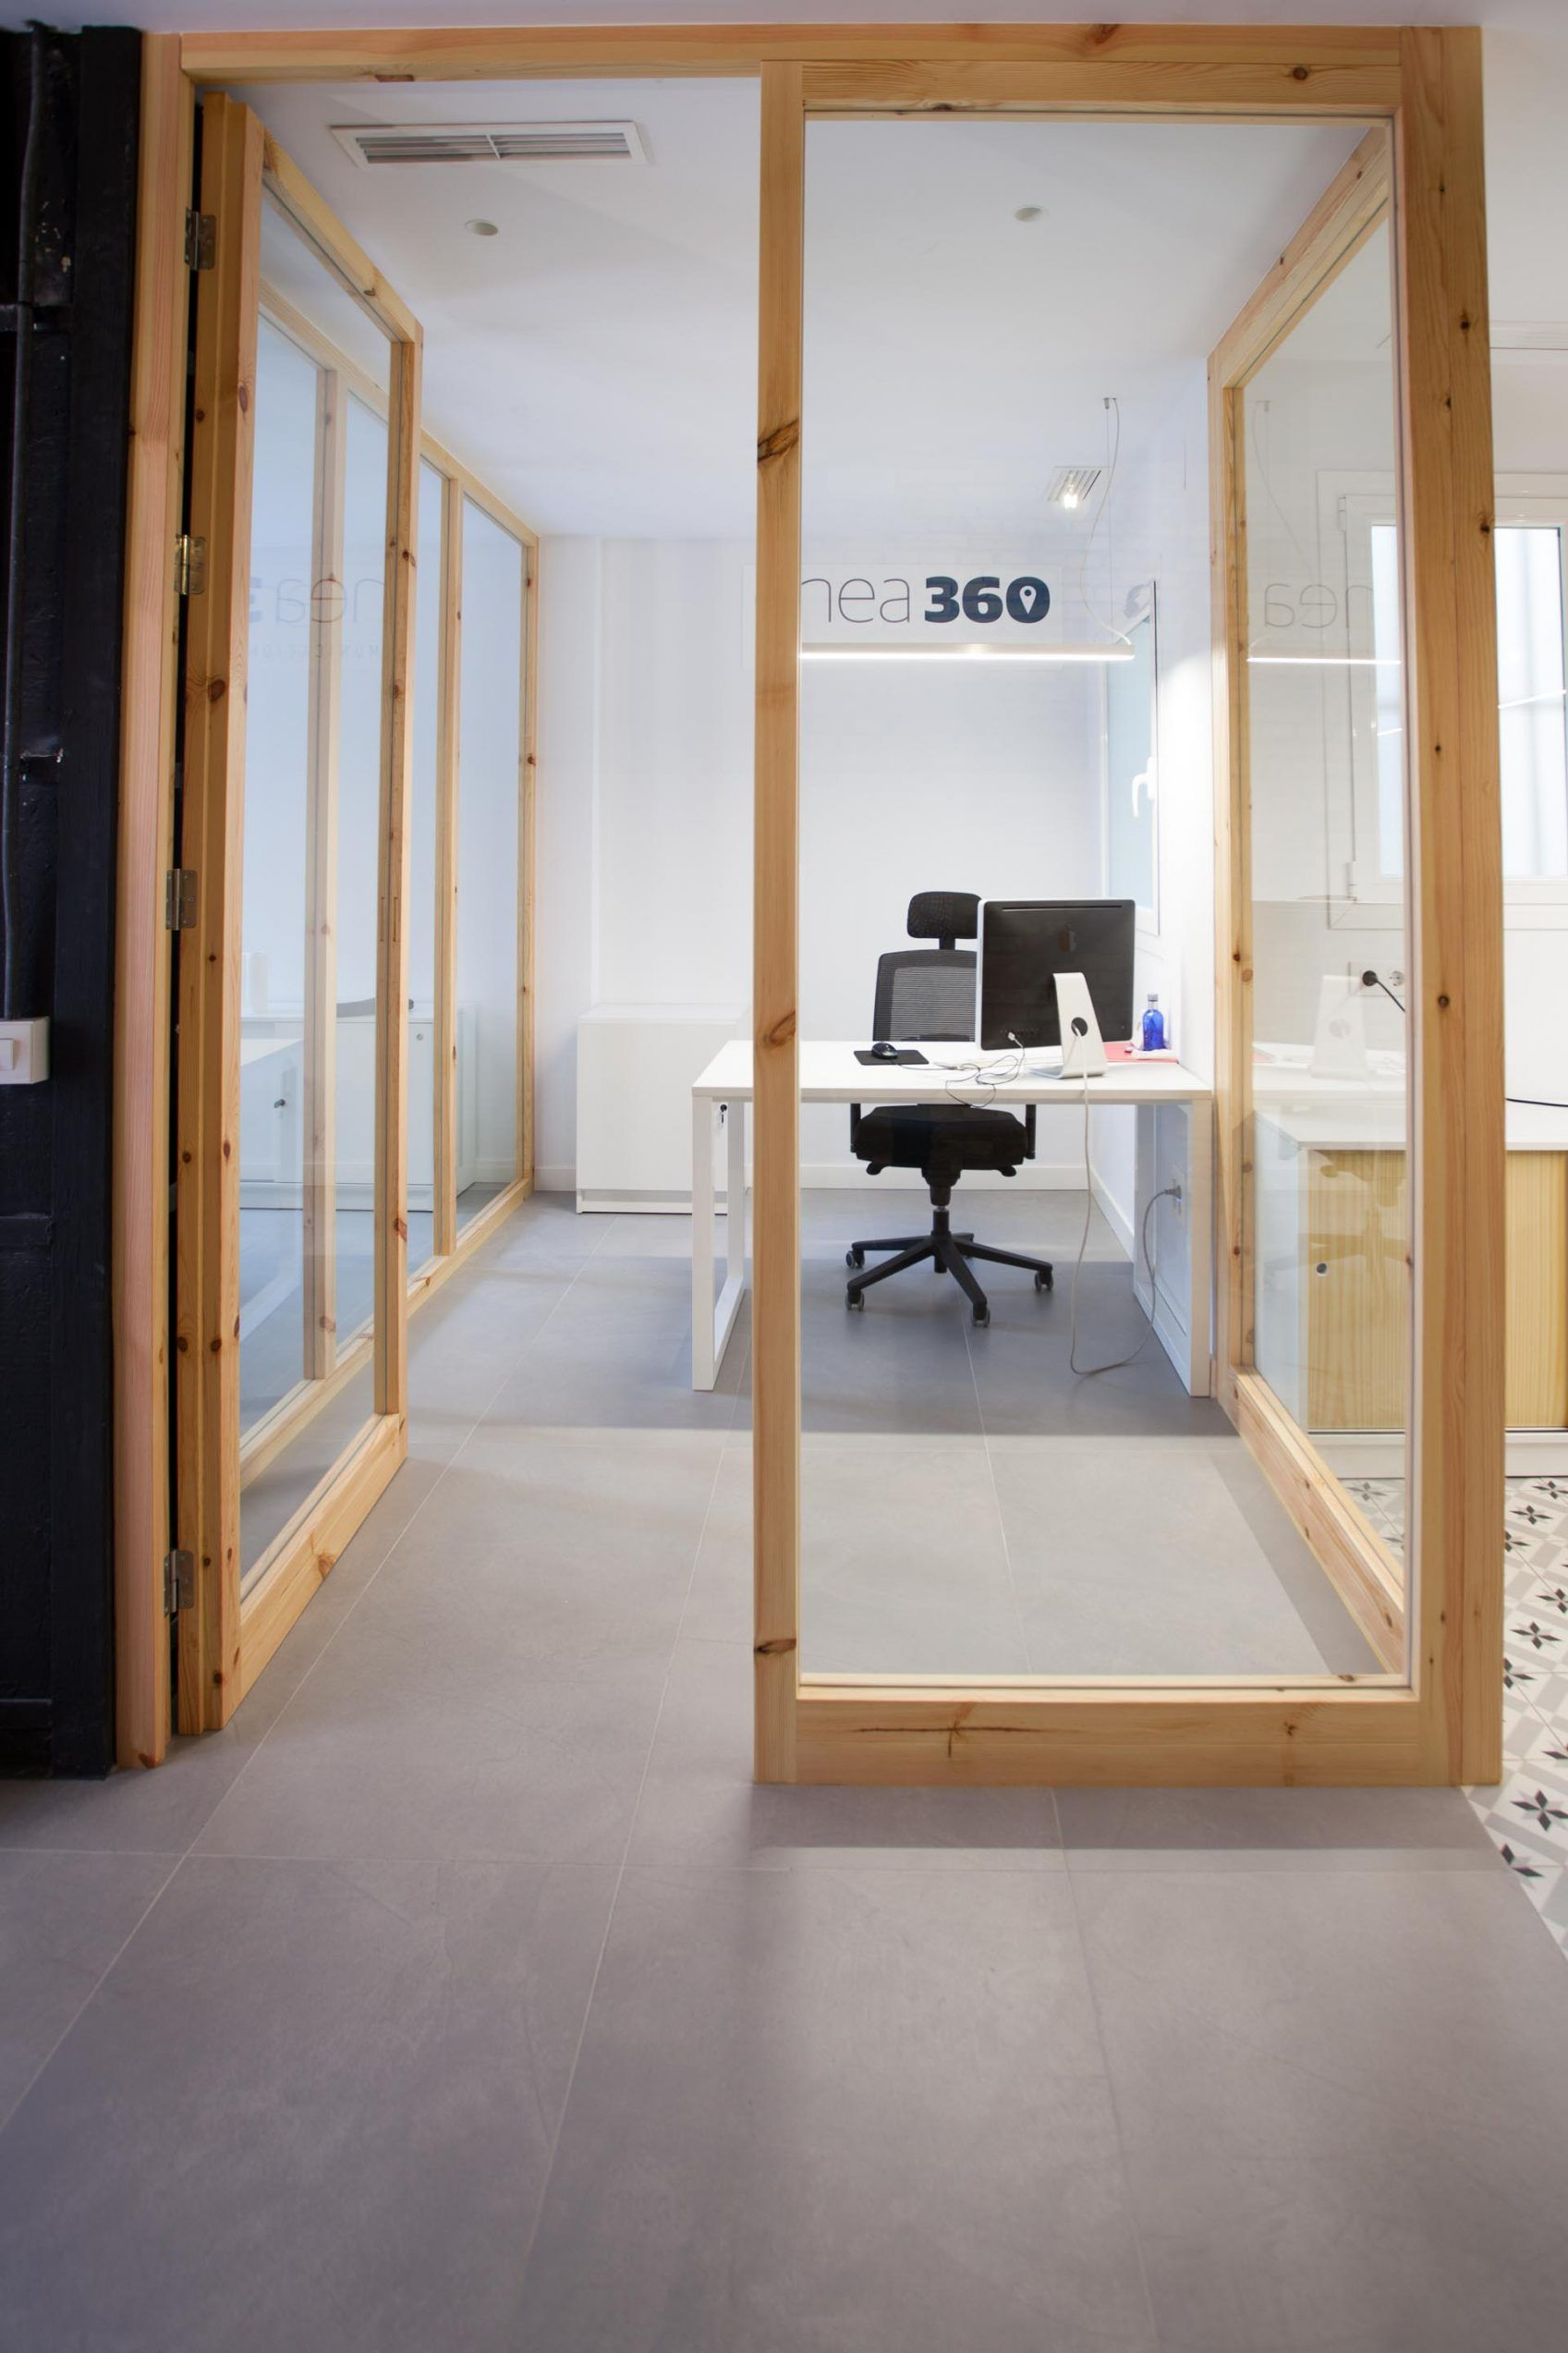 Sede oficinas Google Business View | Perspectiva Moma